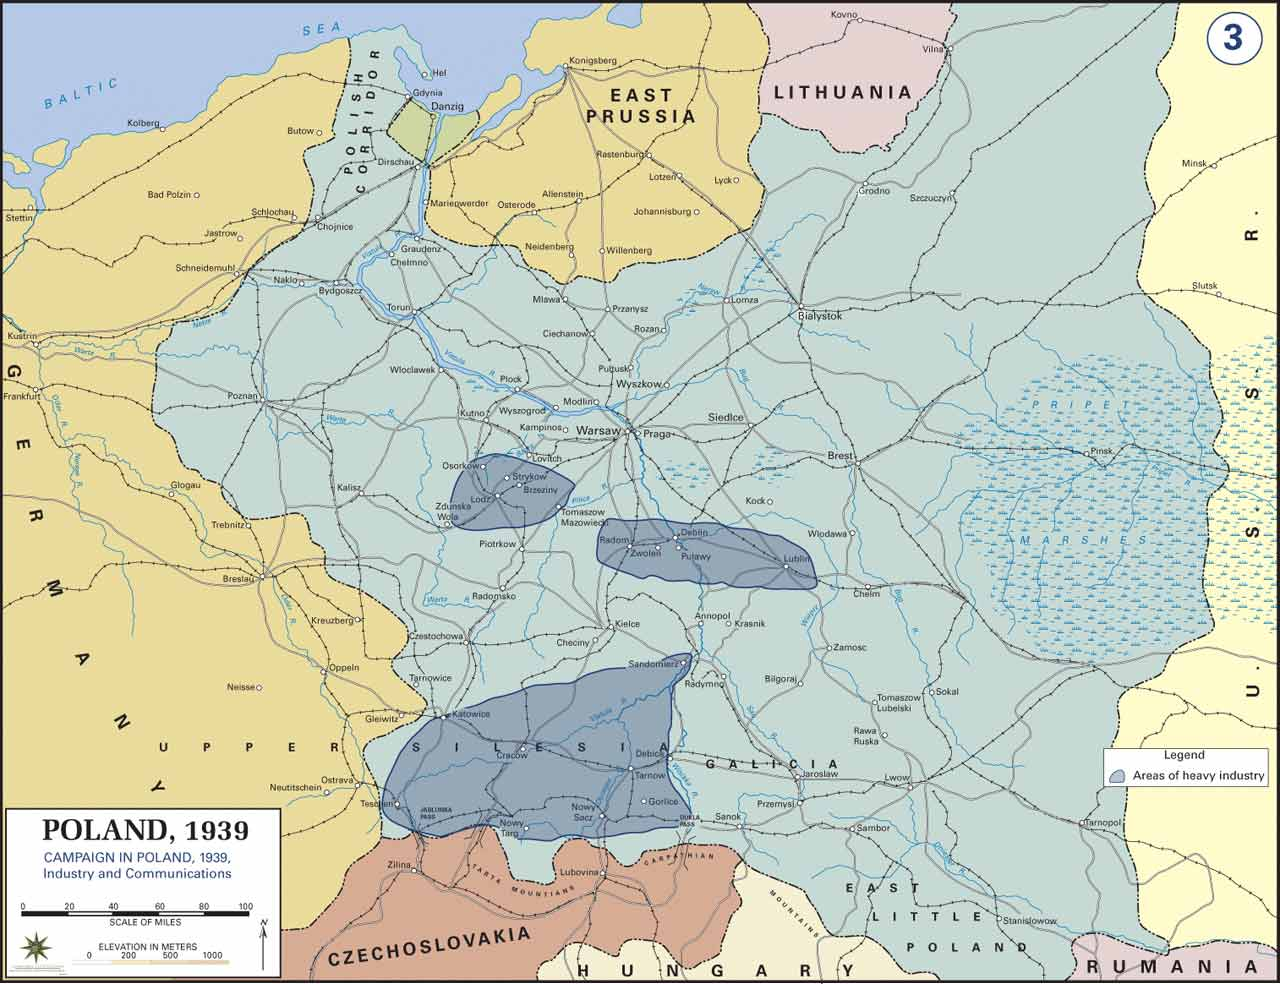 Map of poland prior to world war ii 1939 sources united states military academy gumiabroncs Choice Image